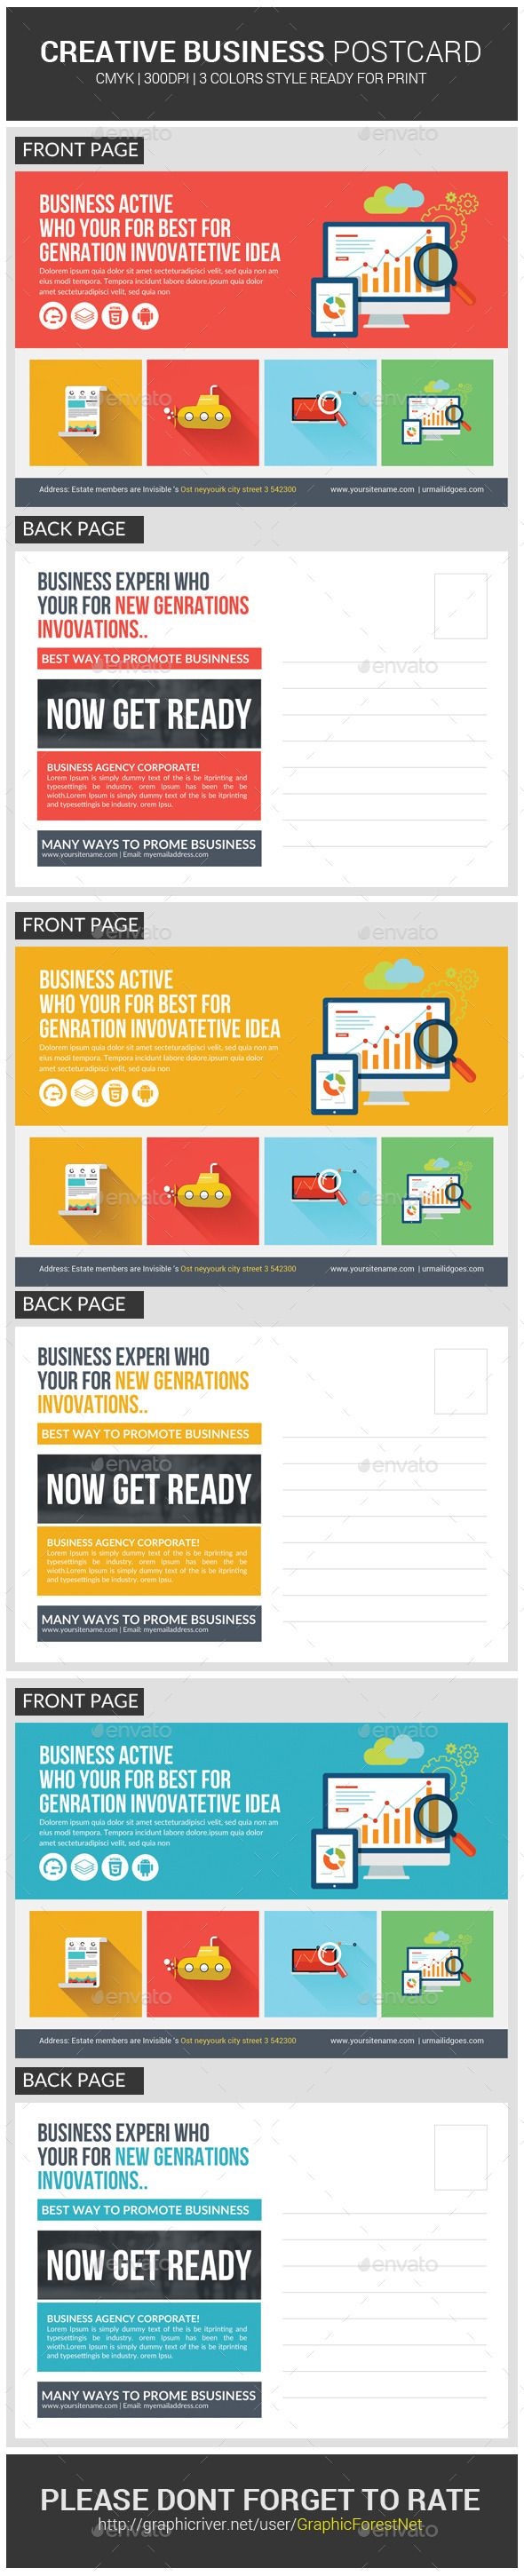 Creative Business Agency Postcard Template